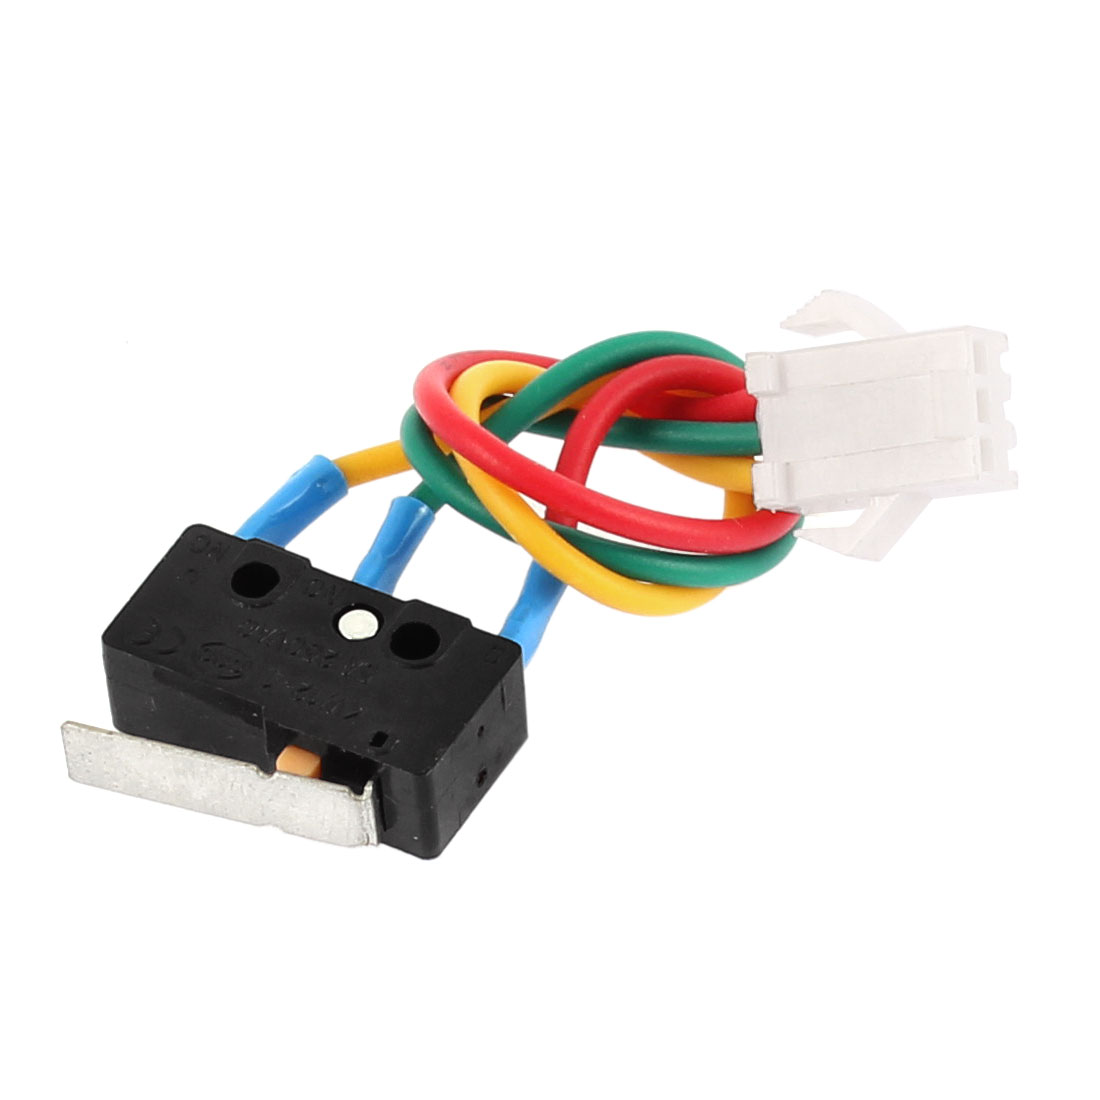 AC 250V 5A 3 Terminal Female Connector Momentary Gas Stove Water Heater Micro Switch